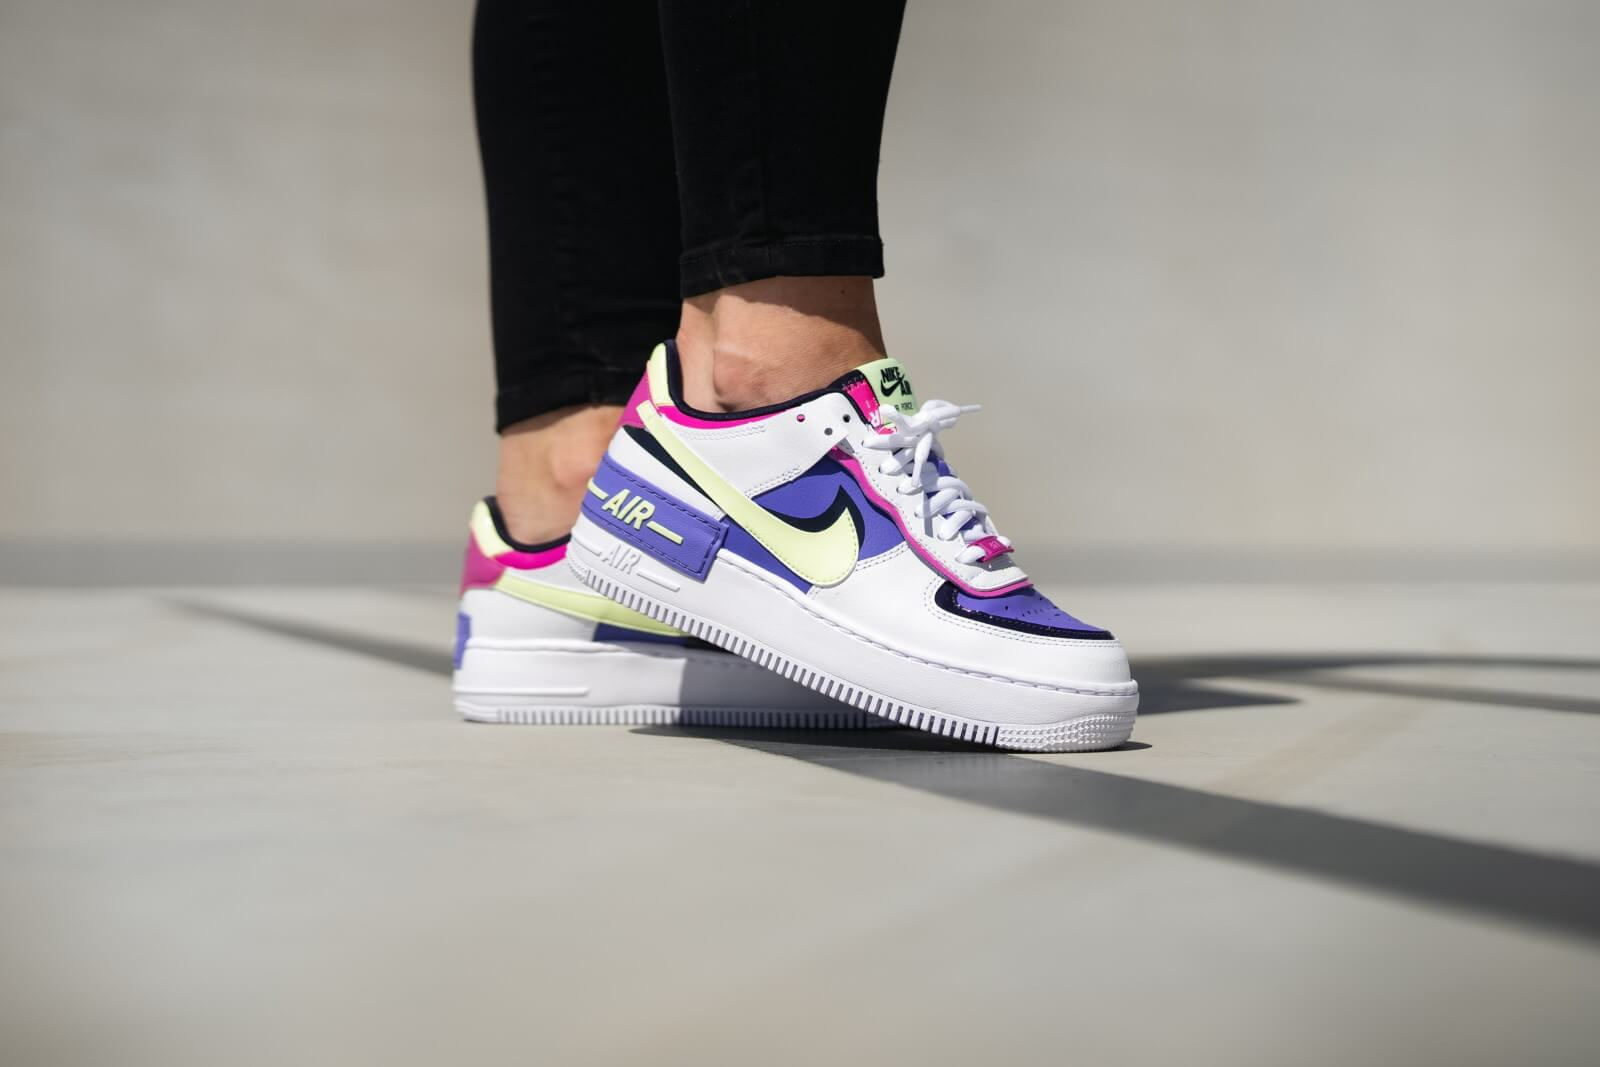 Nike Women's Air Force 1 Shadow White/Barely Volt-Sapphire-Fire Pink